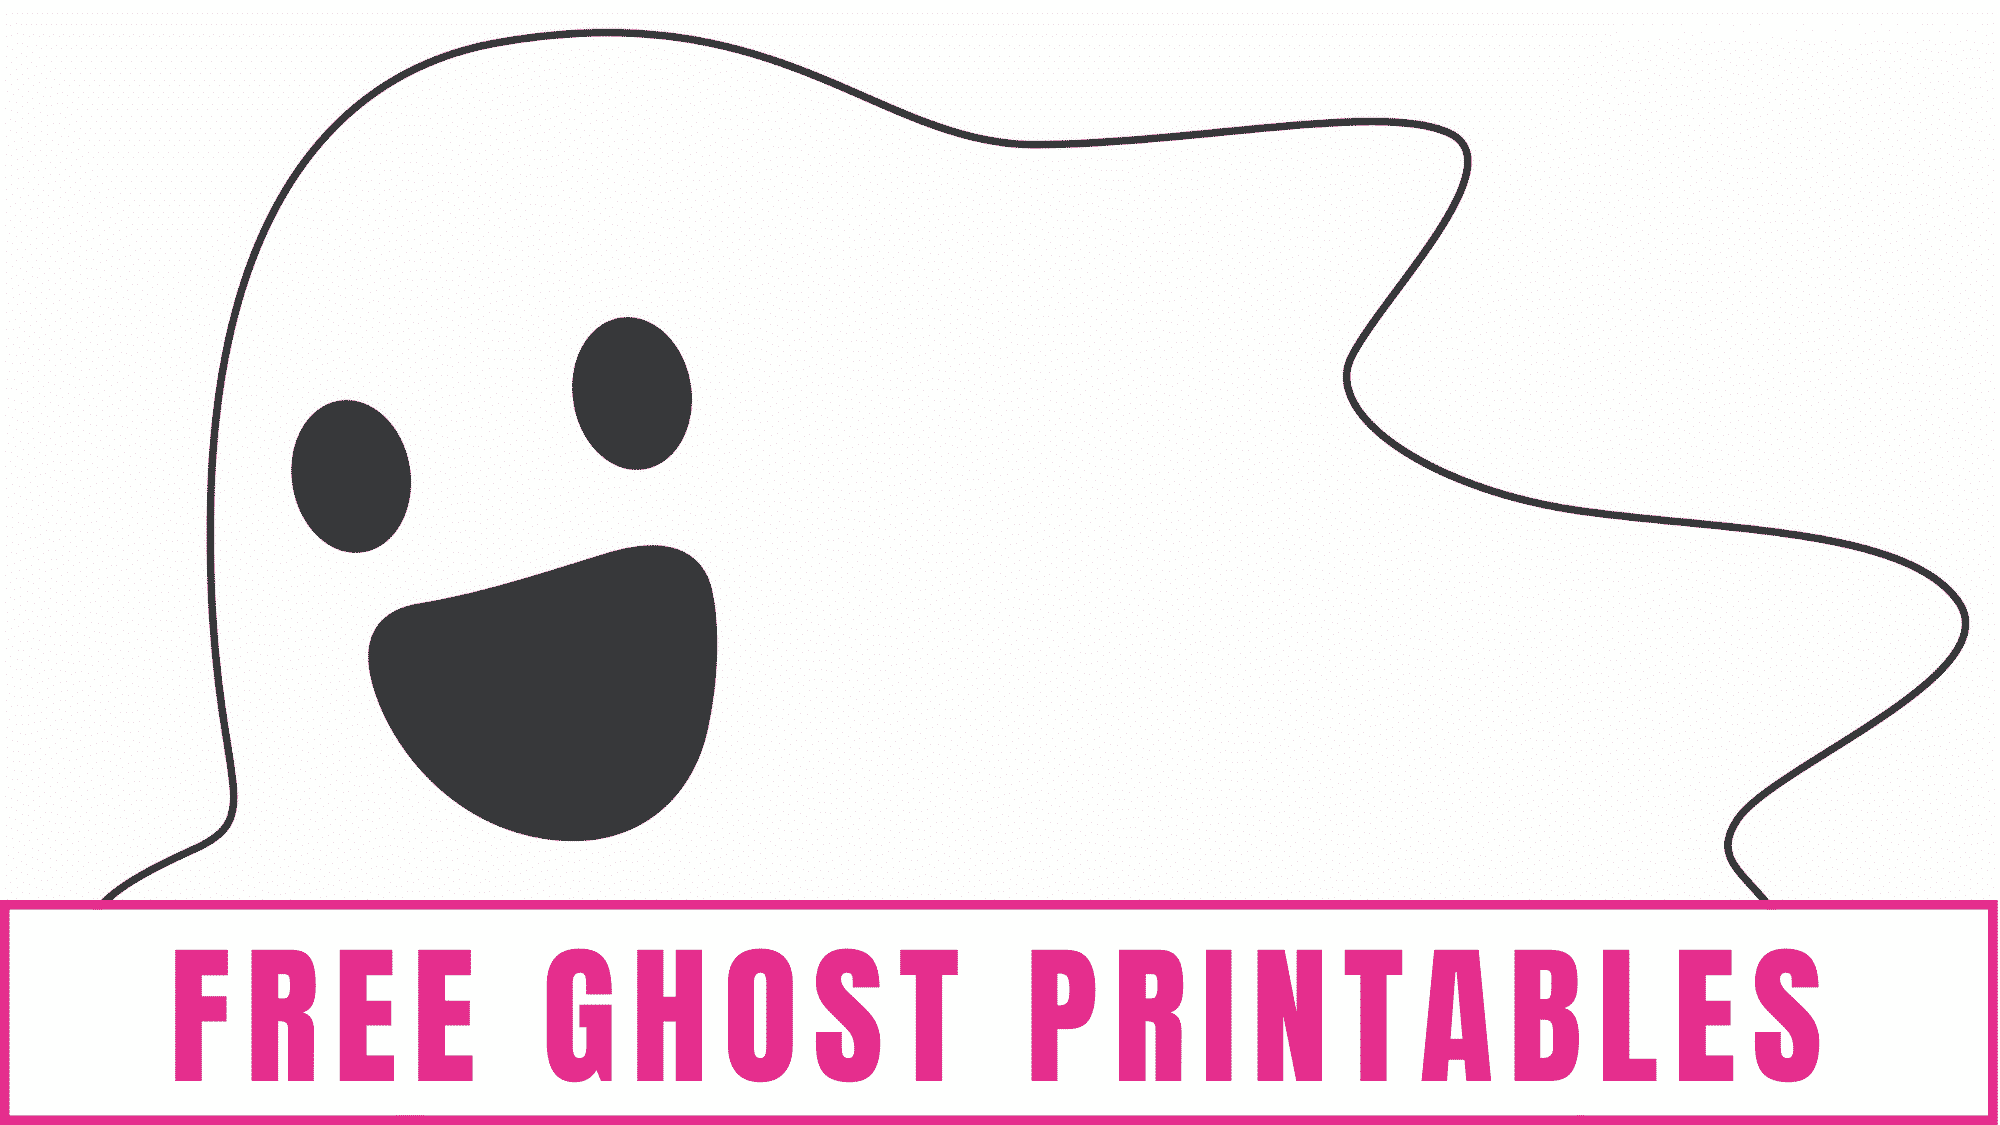 These free ghost printables are perfect to add to your boo printable.